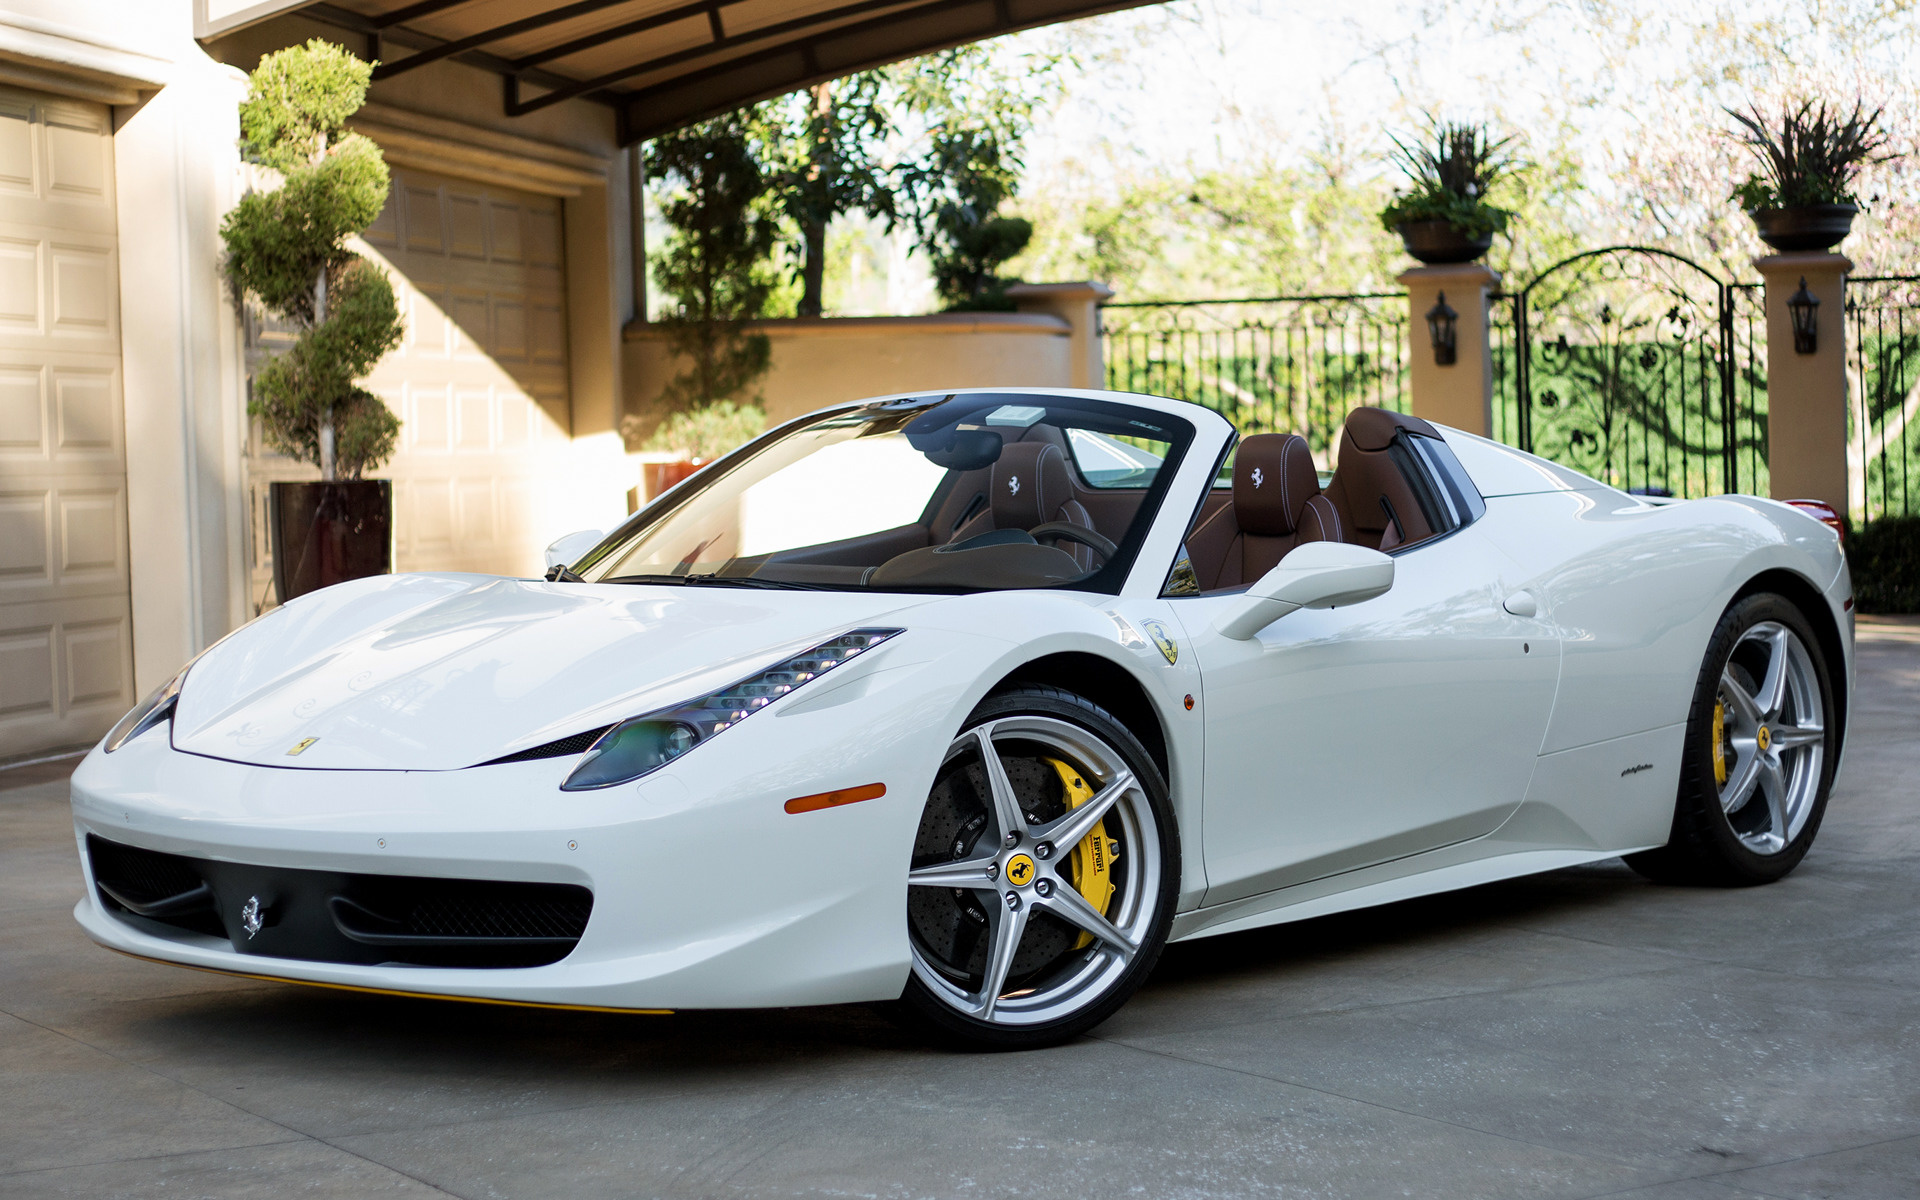 Wide 8:5 · Ferrari 458 Spider (2012) ...